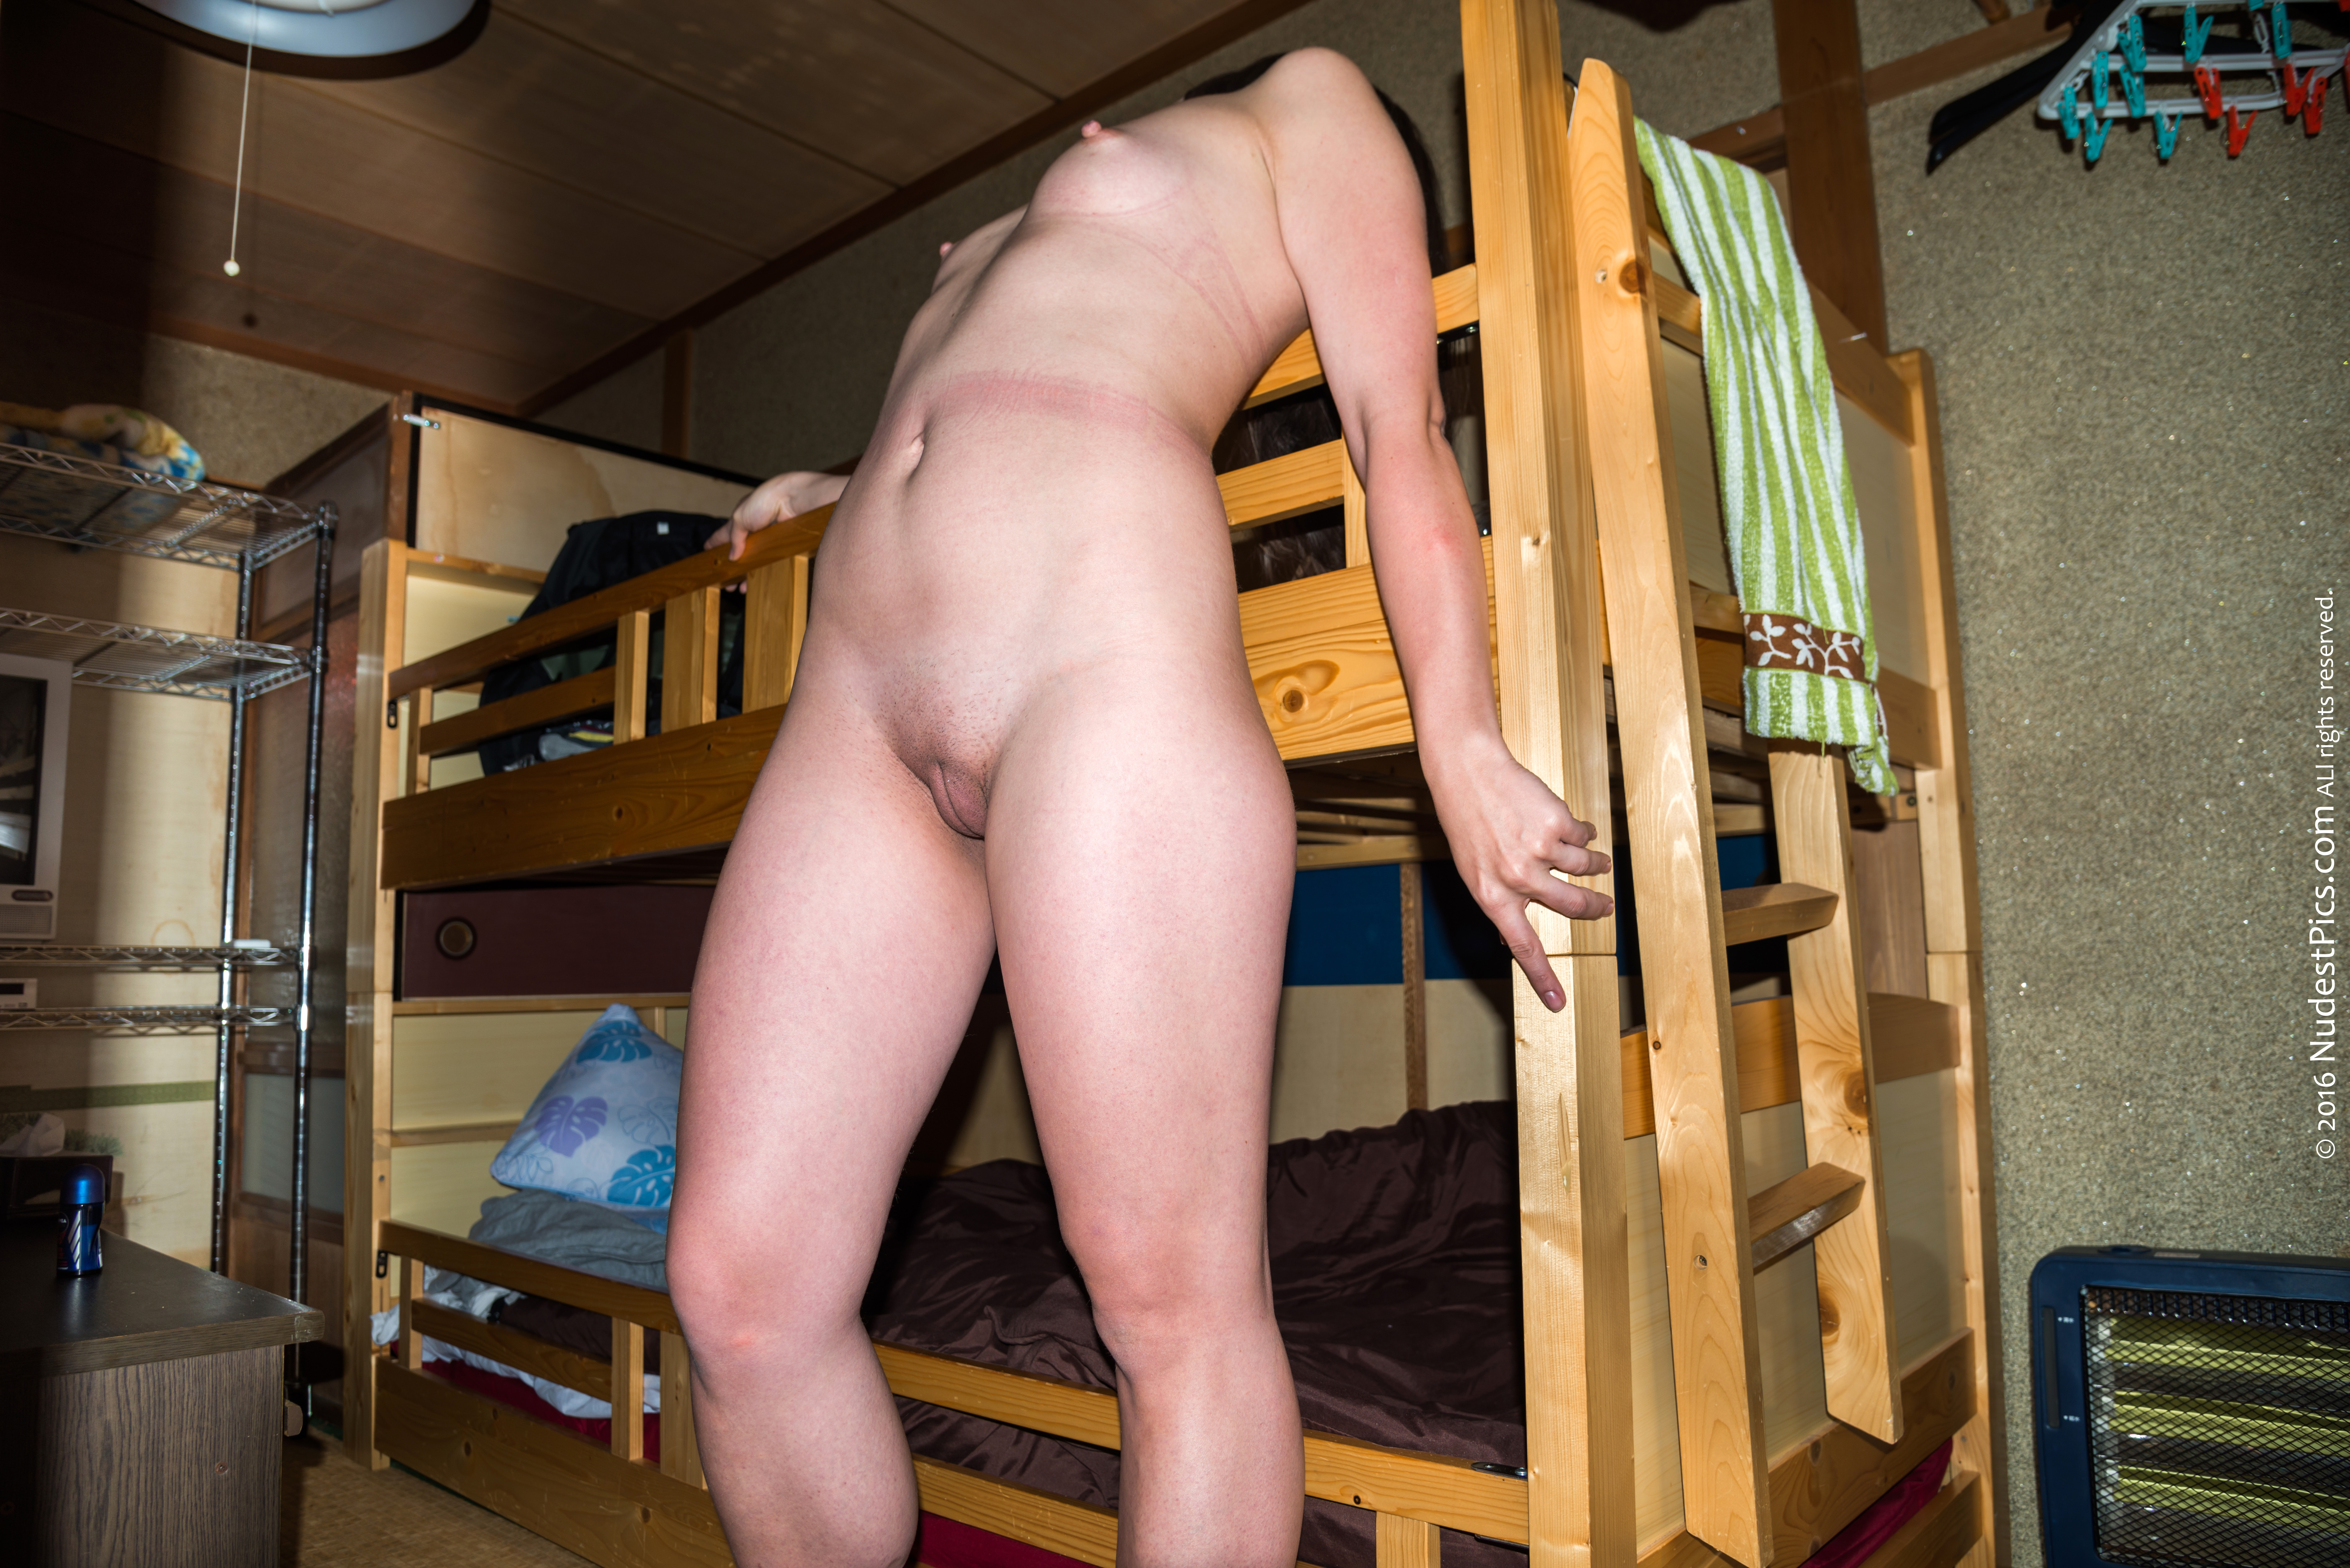 College Girl Naked in the Dorm's Bunk Bed